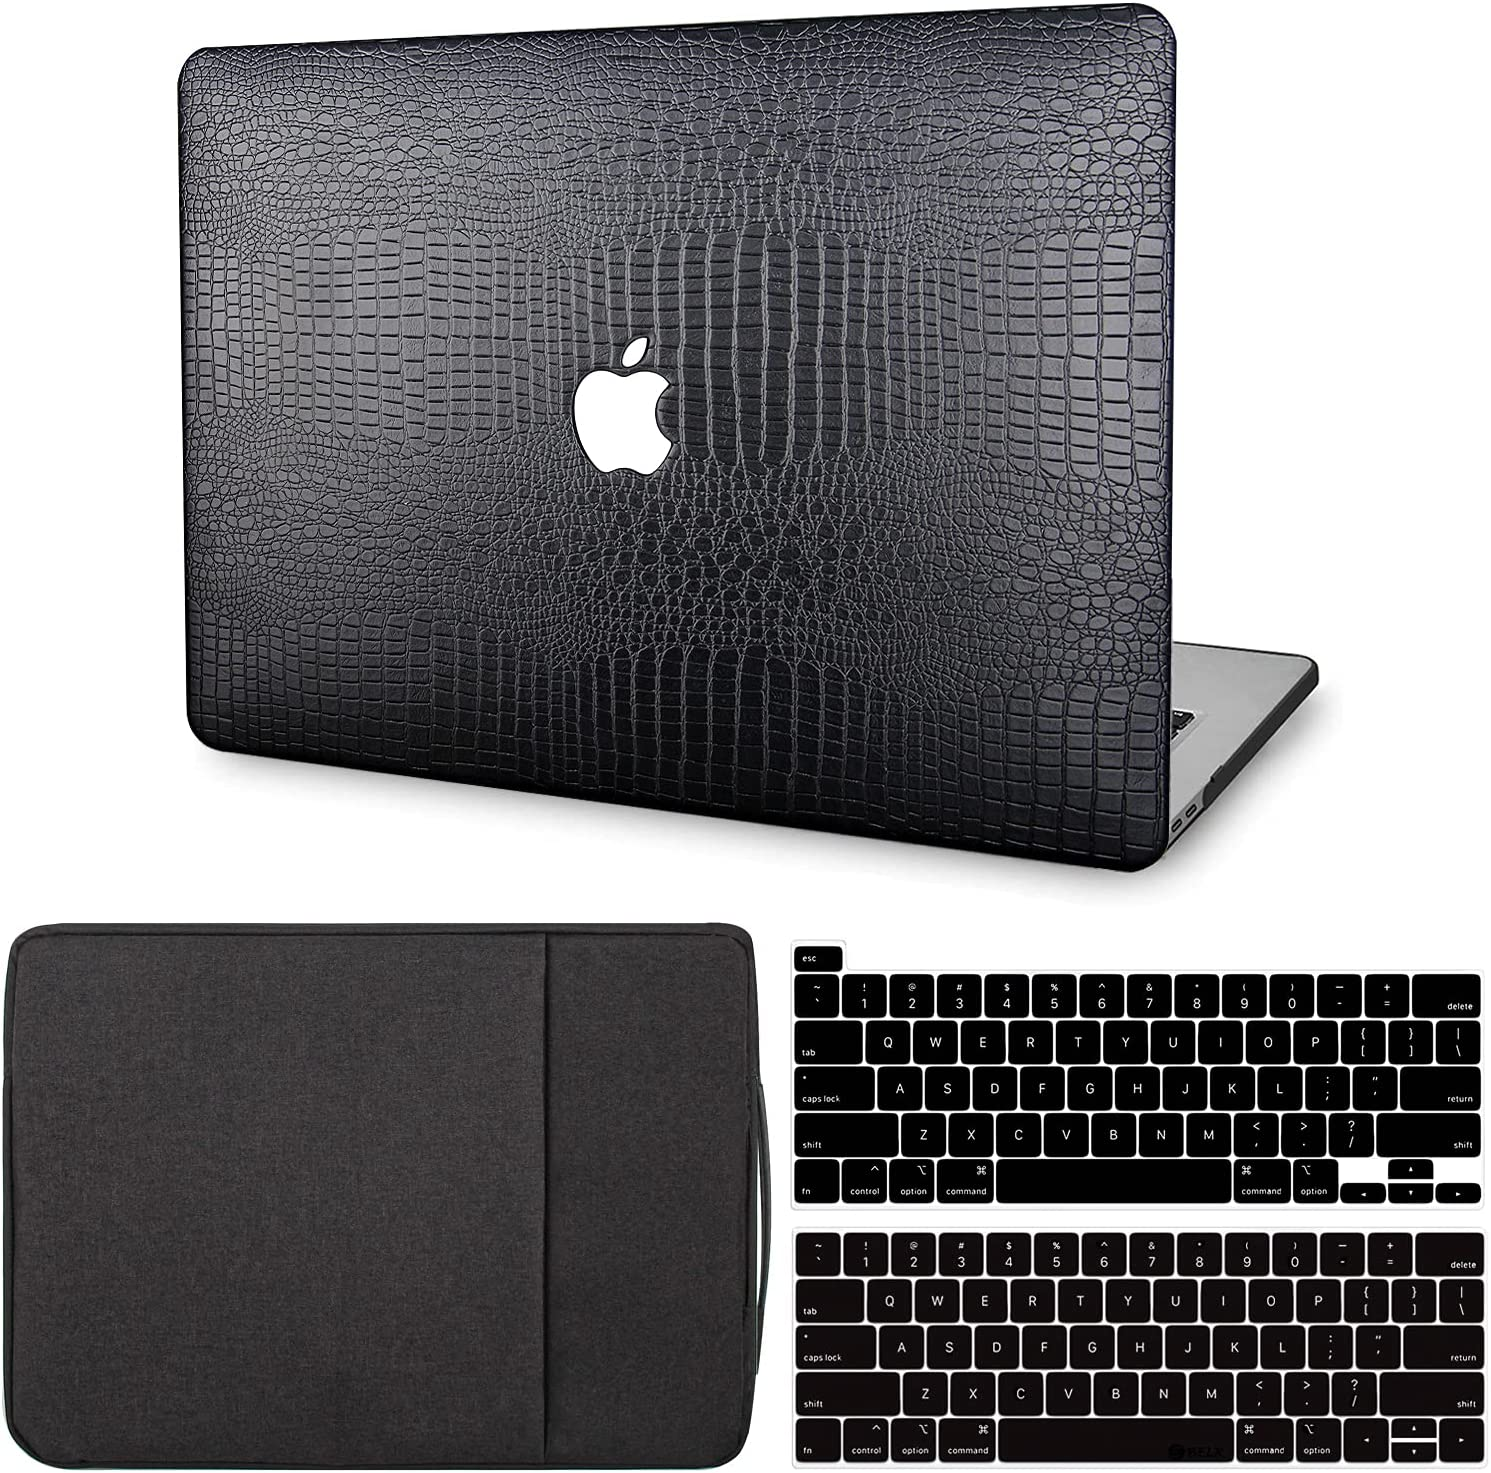 MacBook Pro 13 Inch Case 2020 2019 2018 2017 2016 Release M1 A2338 A2289 A2251 A2159 A1989 A1706 A1708, G JGOO MacBook Pro 2020 Case Touch Bar, Leather Hard Shell Case & Laptop Sleeve & Keyboard Cover